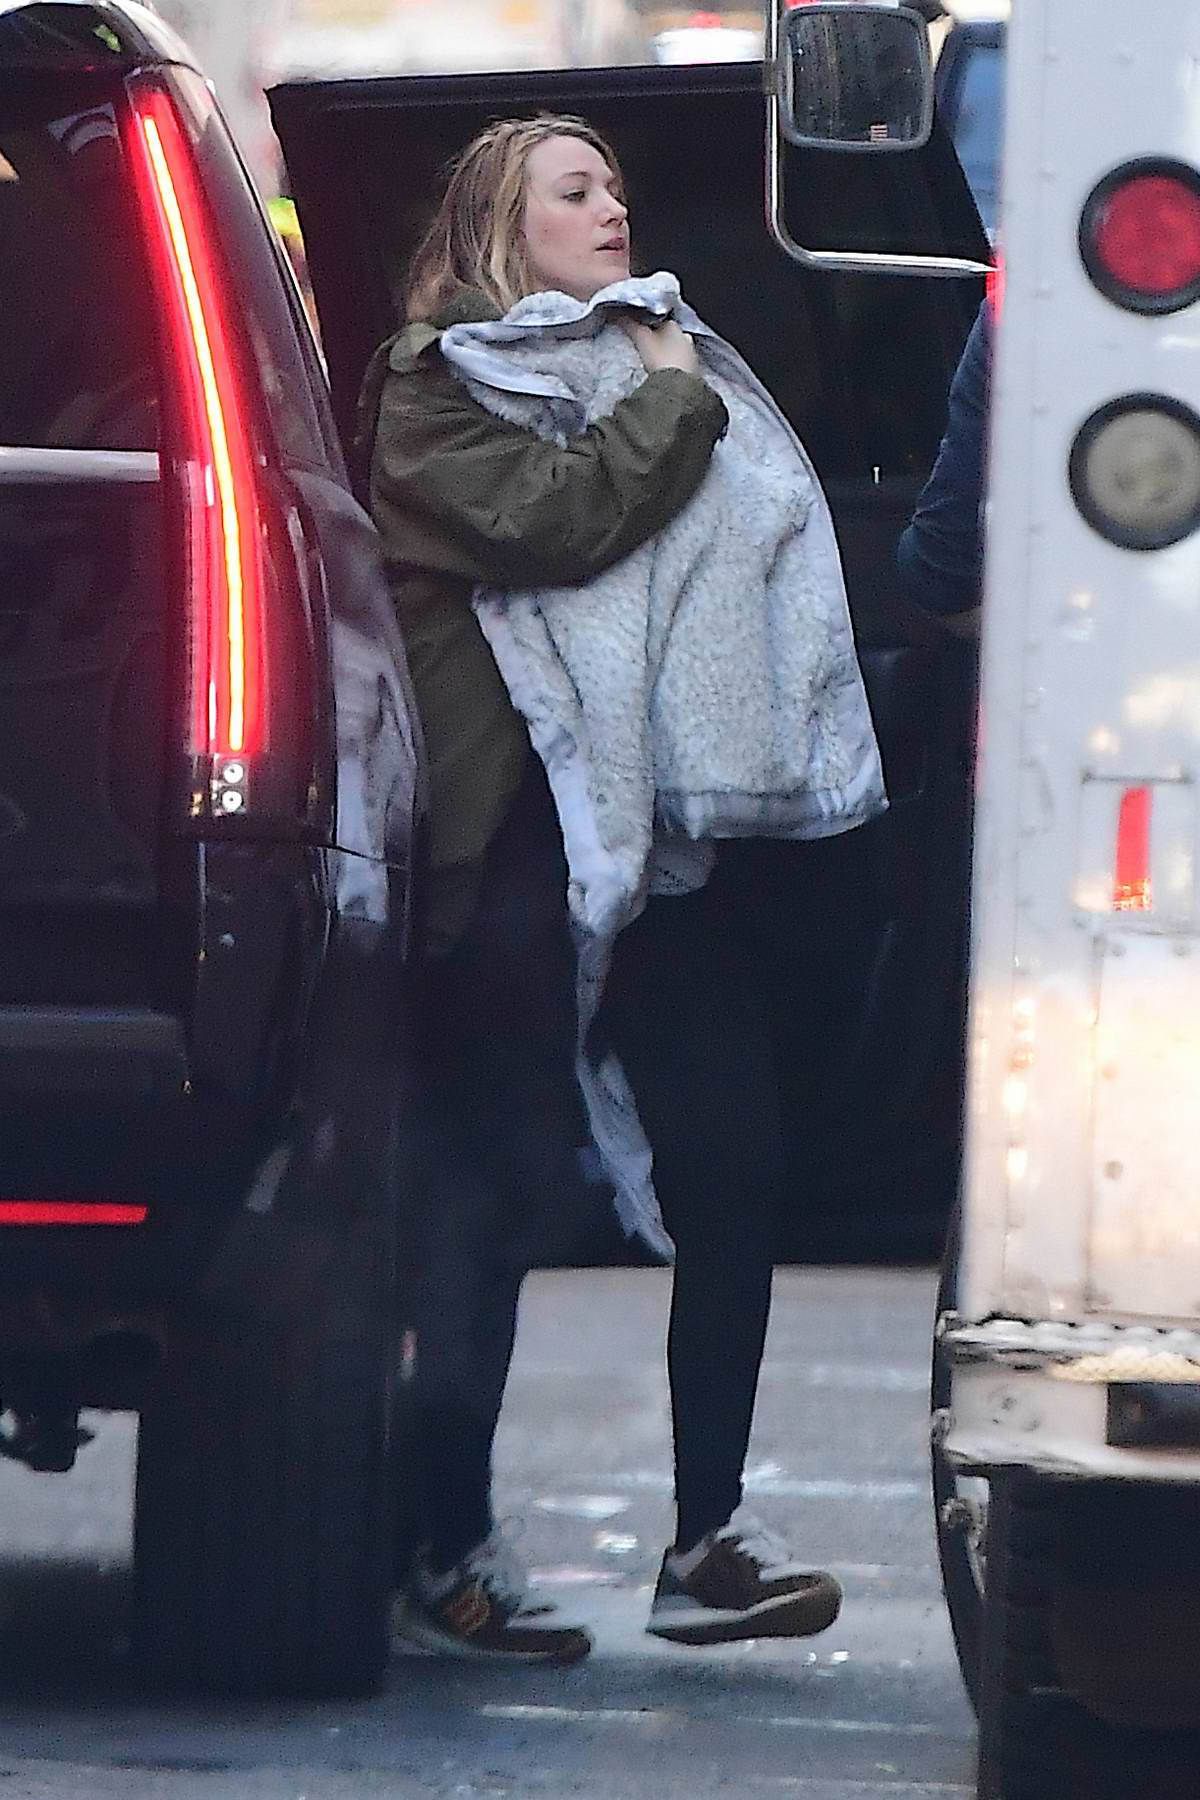 Blake Lively seen with her newborn baby girl out for breakfast in New York City